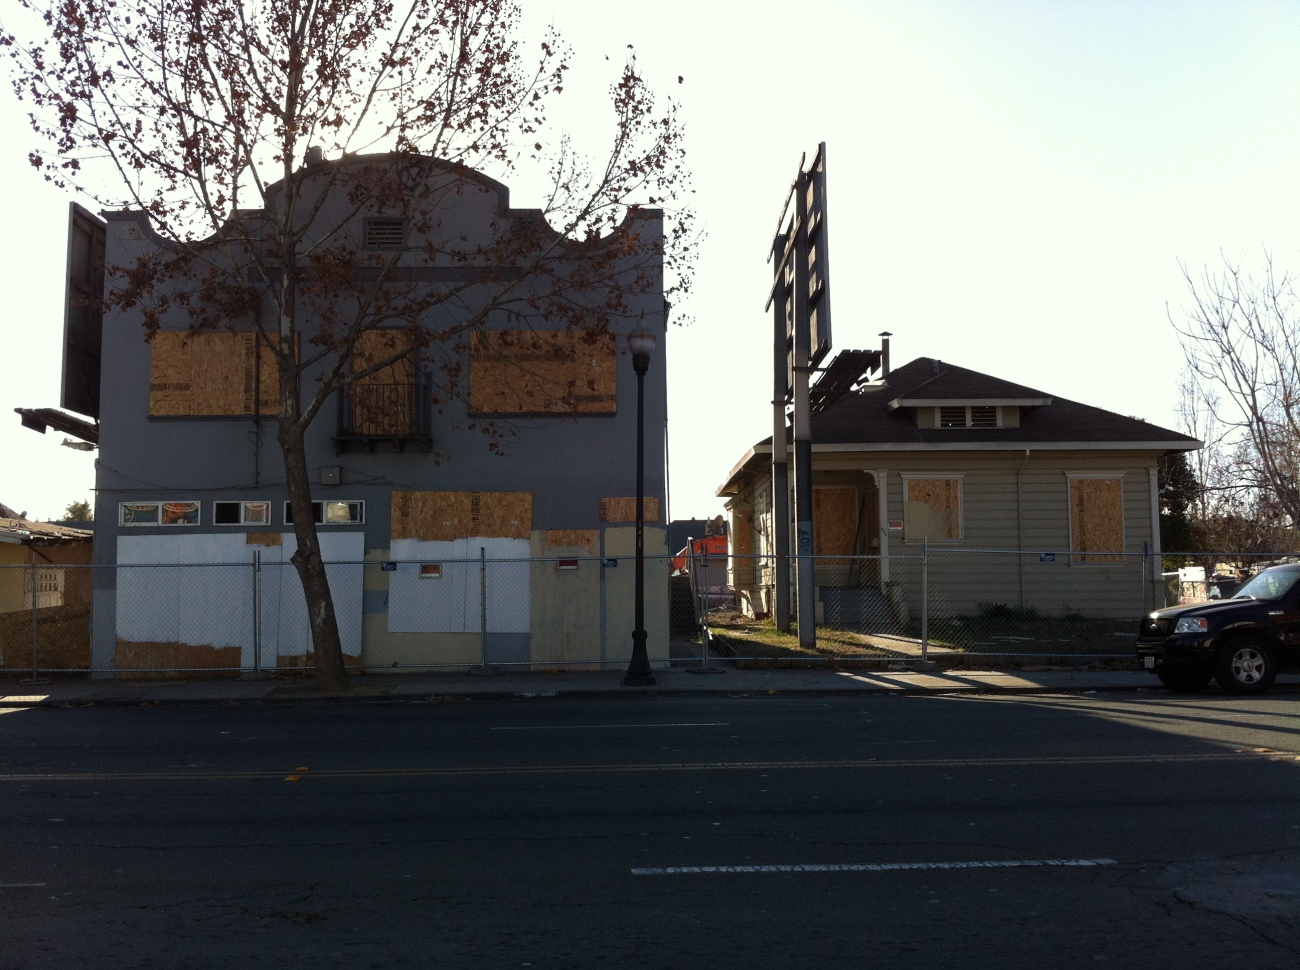 Abandoned houses, San Jose, CA